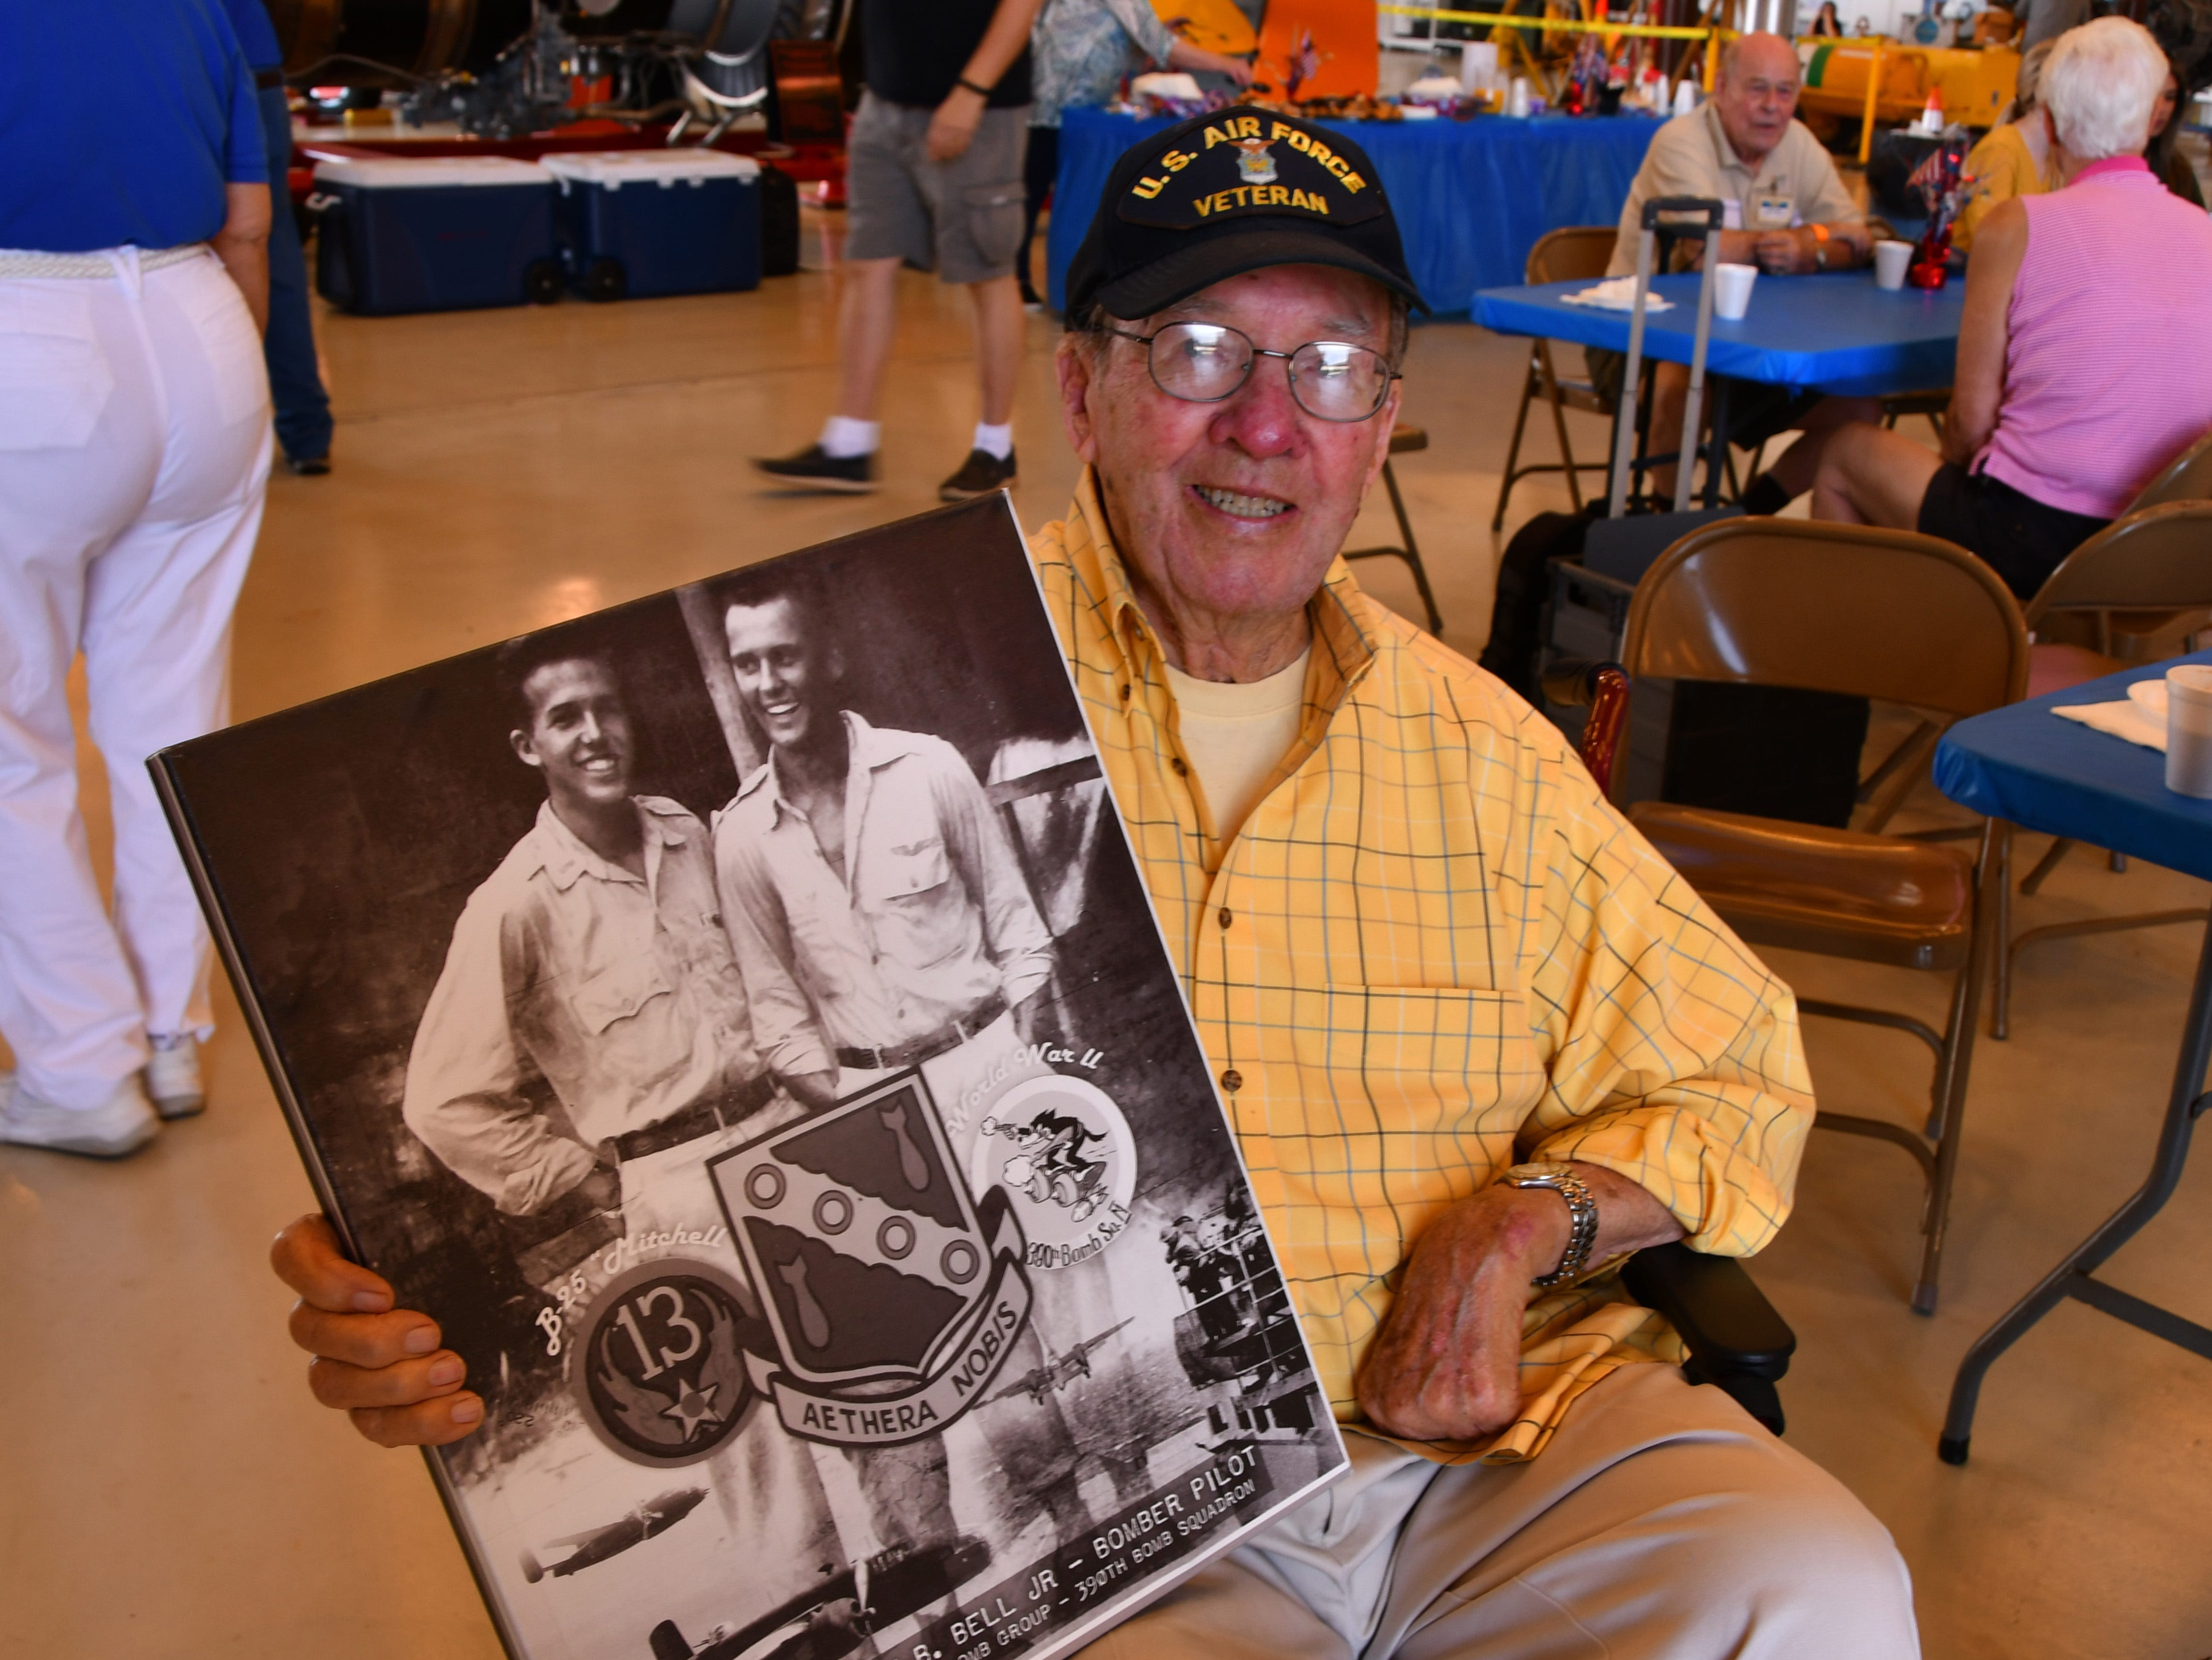 Alyn Bell, 94, who flew B-25 bombers in the Phillipines in WWII, brought a photo of him from younger days to media day. He is the young man in the left. The 2019 Space Coast Warbird Air Show held their media day Thursday, promoting the Air Show that runs Friday, Saturday and Sunday at Space Coast Regional Airport in Titusville, with a Friday afternoon and evening show with fireworks, and shows Saturday and Sunday afternoon.